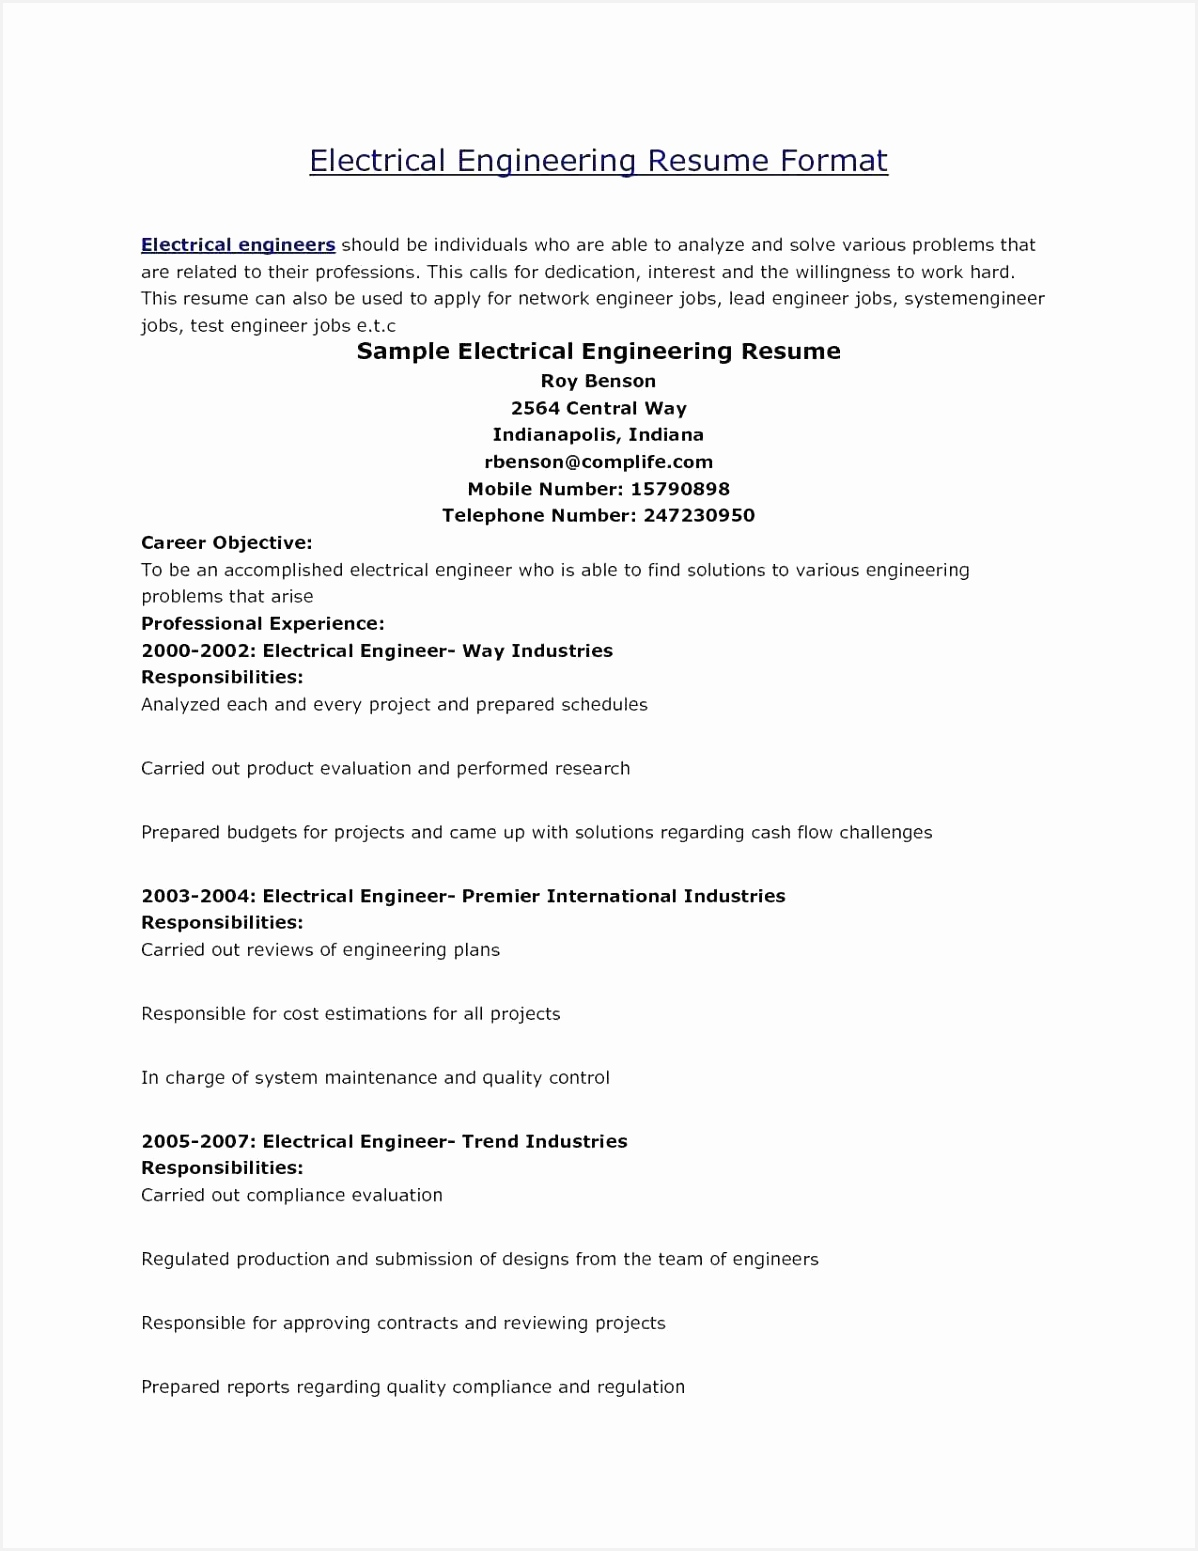 Contract Stress Engineer Sample Resume Nljaa Beautiful Resume format for Design Engineer In Mechanical Fresh Sample Resume Of Contract Stress Engineer Sample Resume Gjkbn Best Of Hvac Estimator Mechanical Engineer Cv Resume for Sales Beautiful